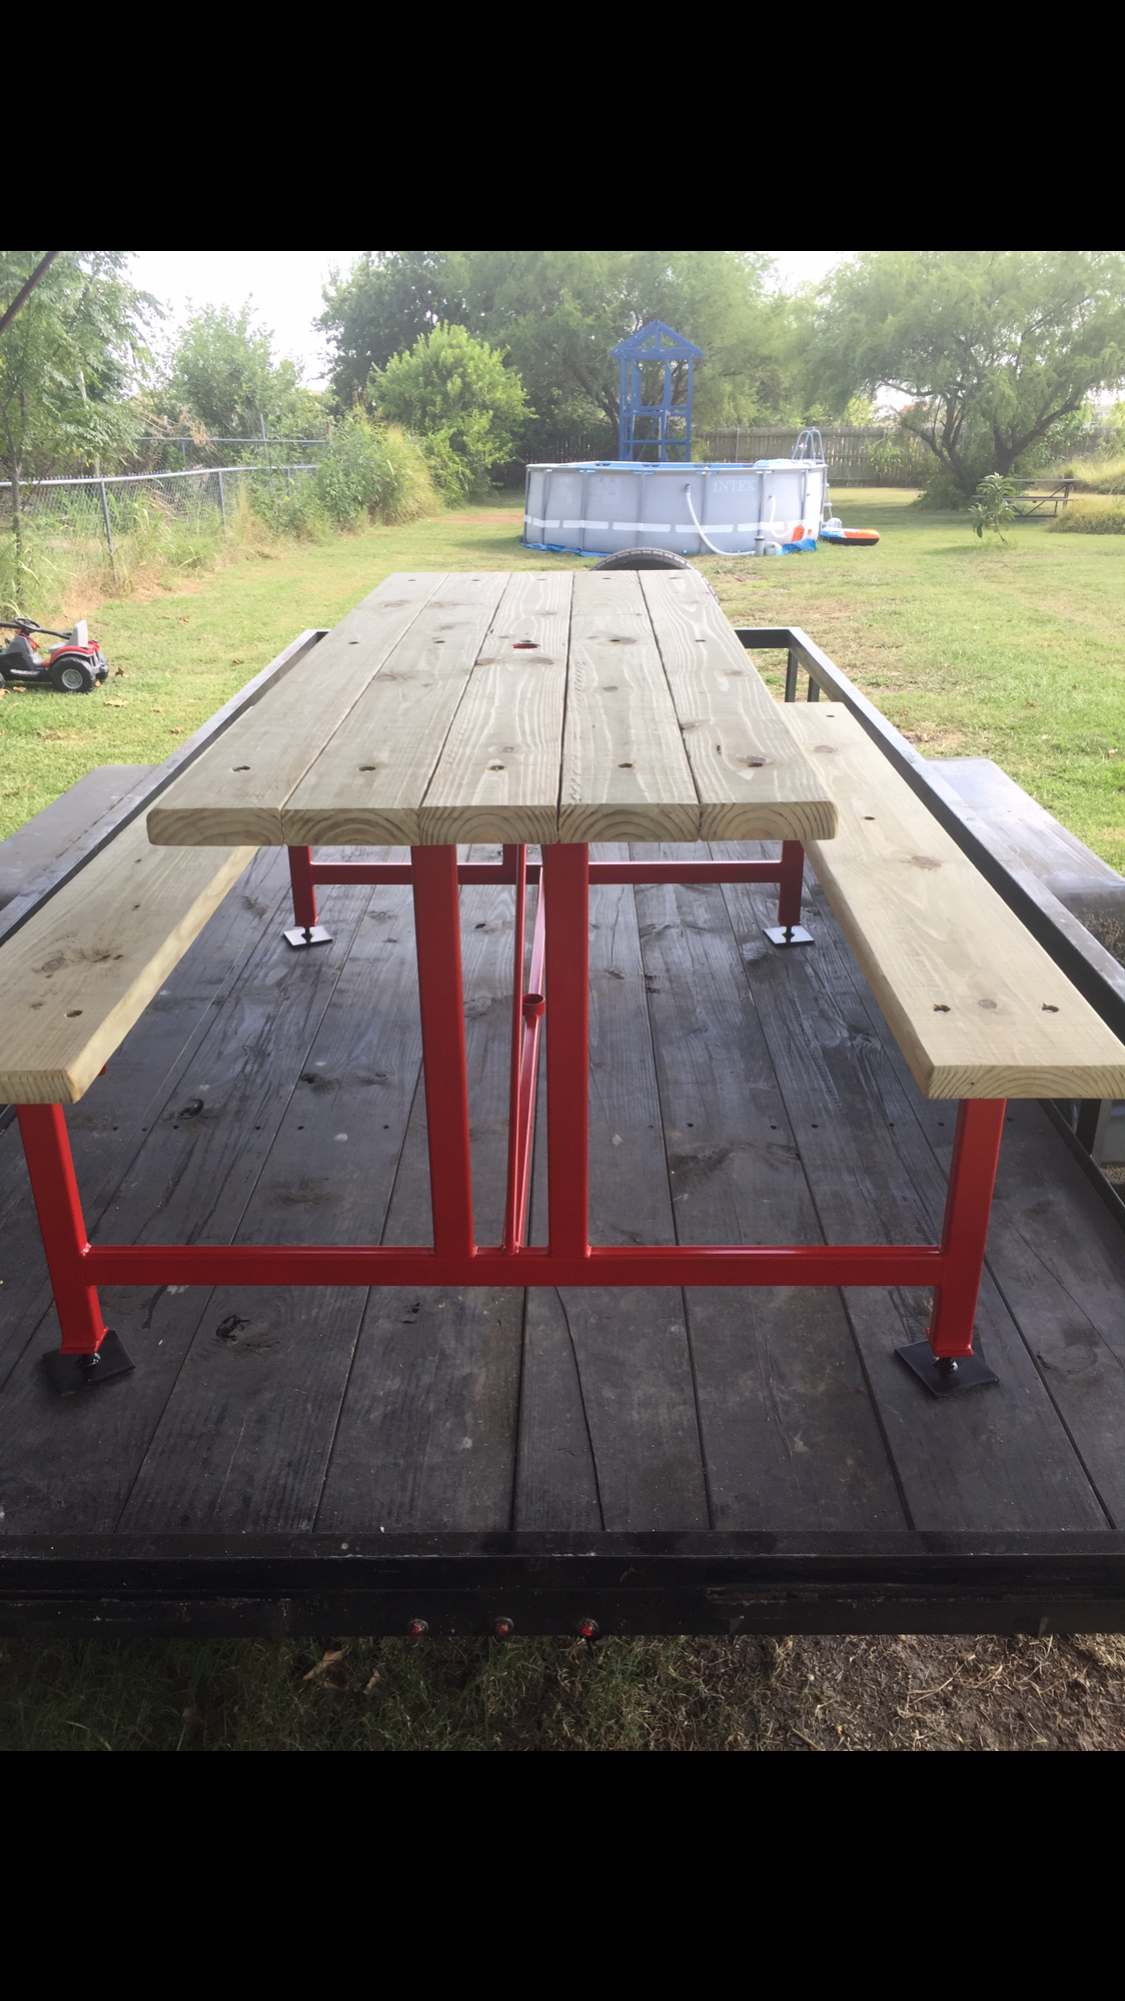 6' Steel Frame Picnic Table | Metal Picnic Tables, Welded Pertaining To Pettit Steel Garden Benches (View 22 of 25)